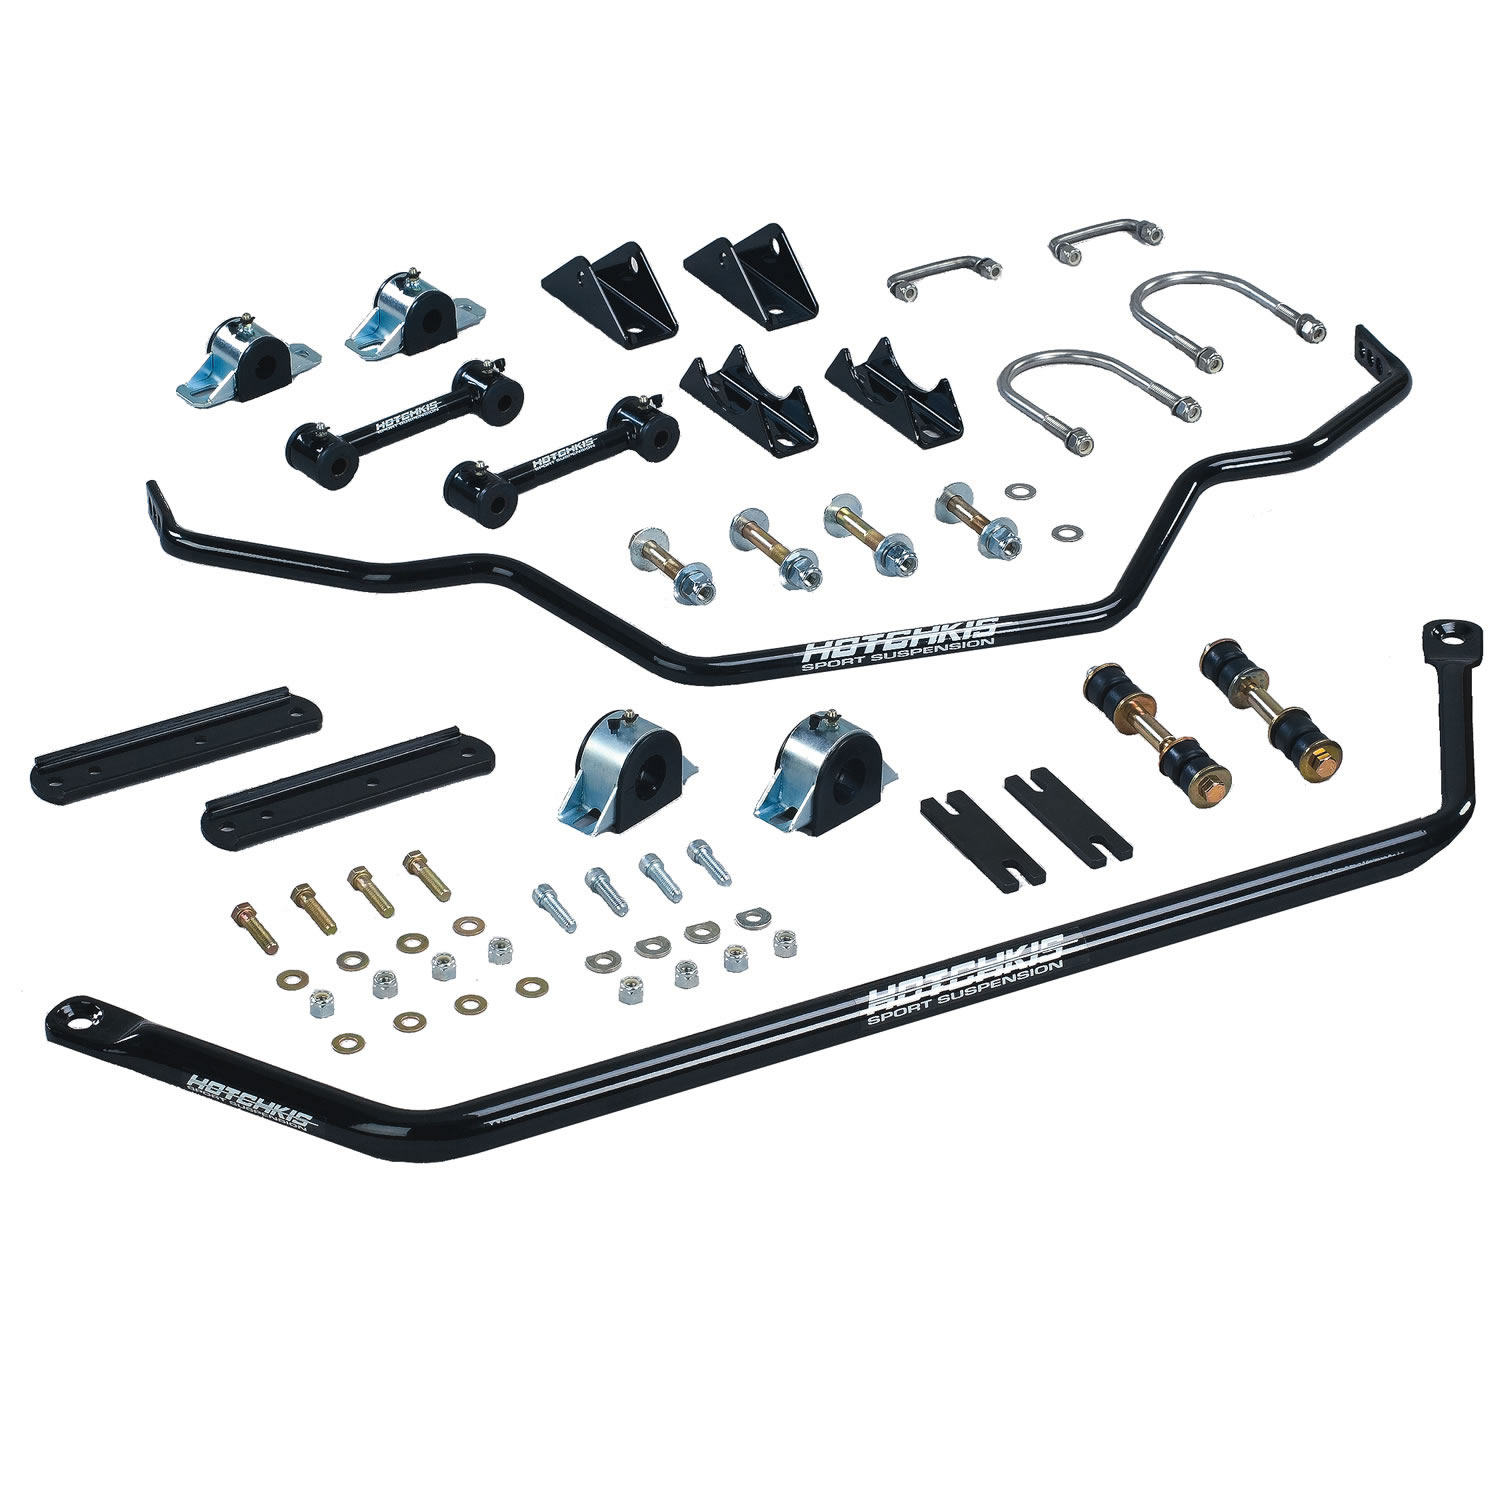 1970-1974 Mopar E Body Sport Sway Bar Set from Hotchkis Sport Suspension